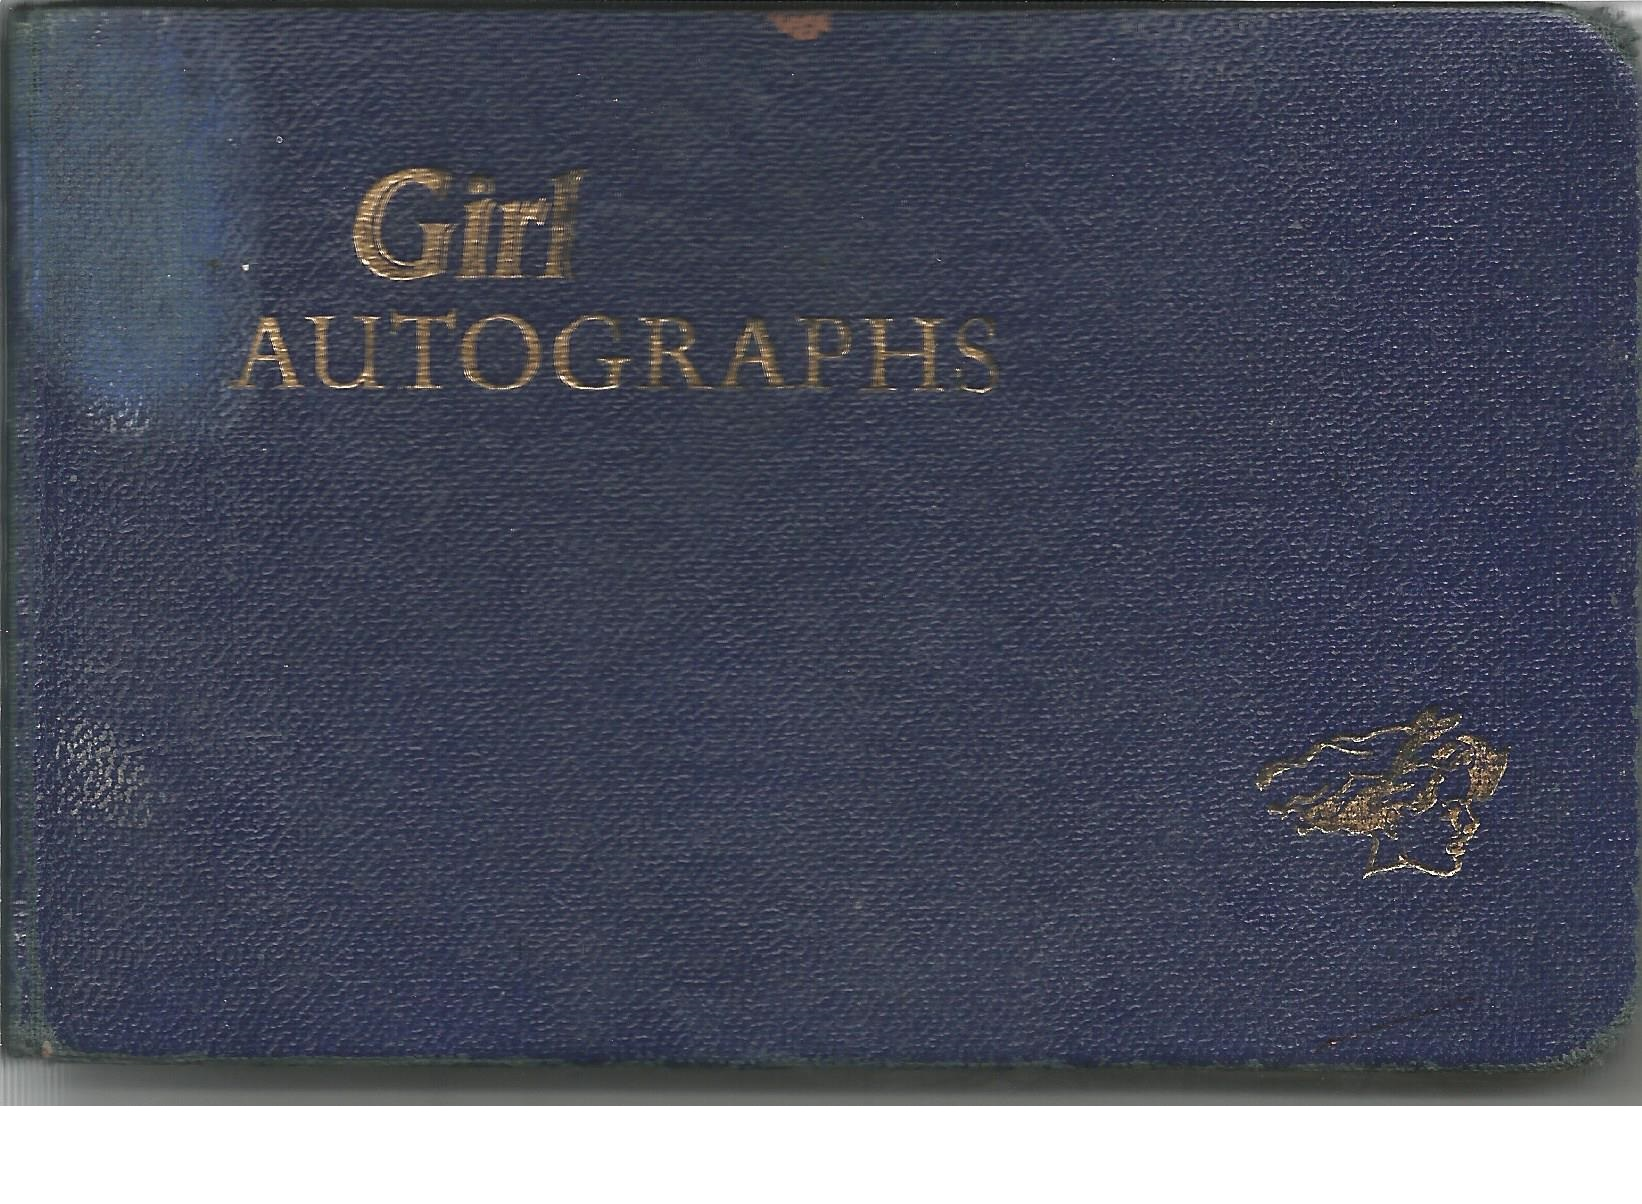 Lot 25 - 1960s Music TV Small blue autograph book. A good 1960s book containing many musical & TV notables of